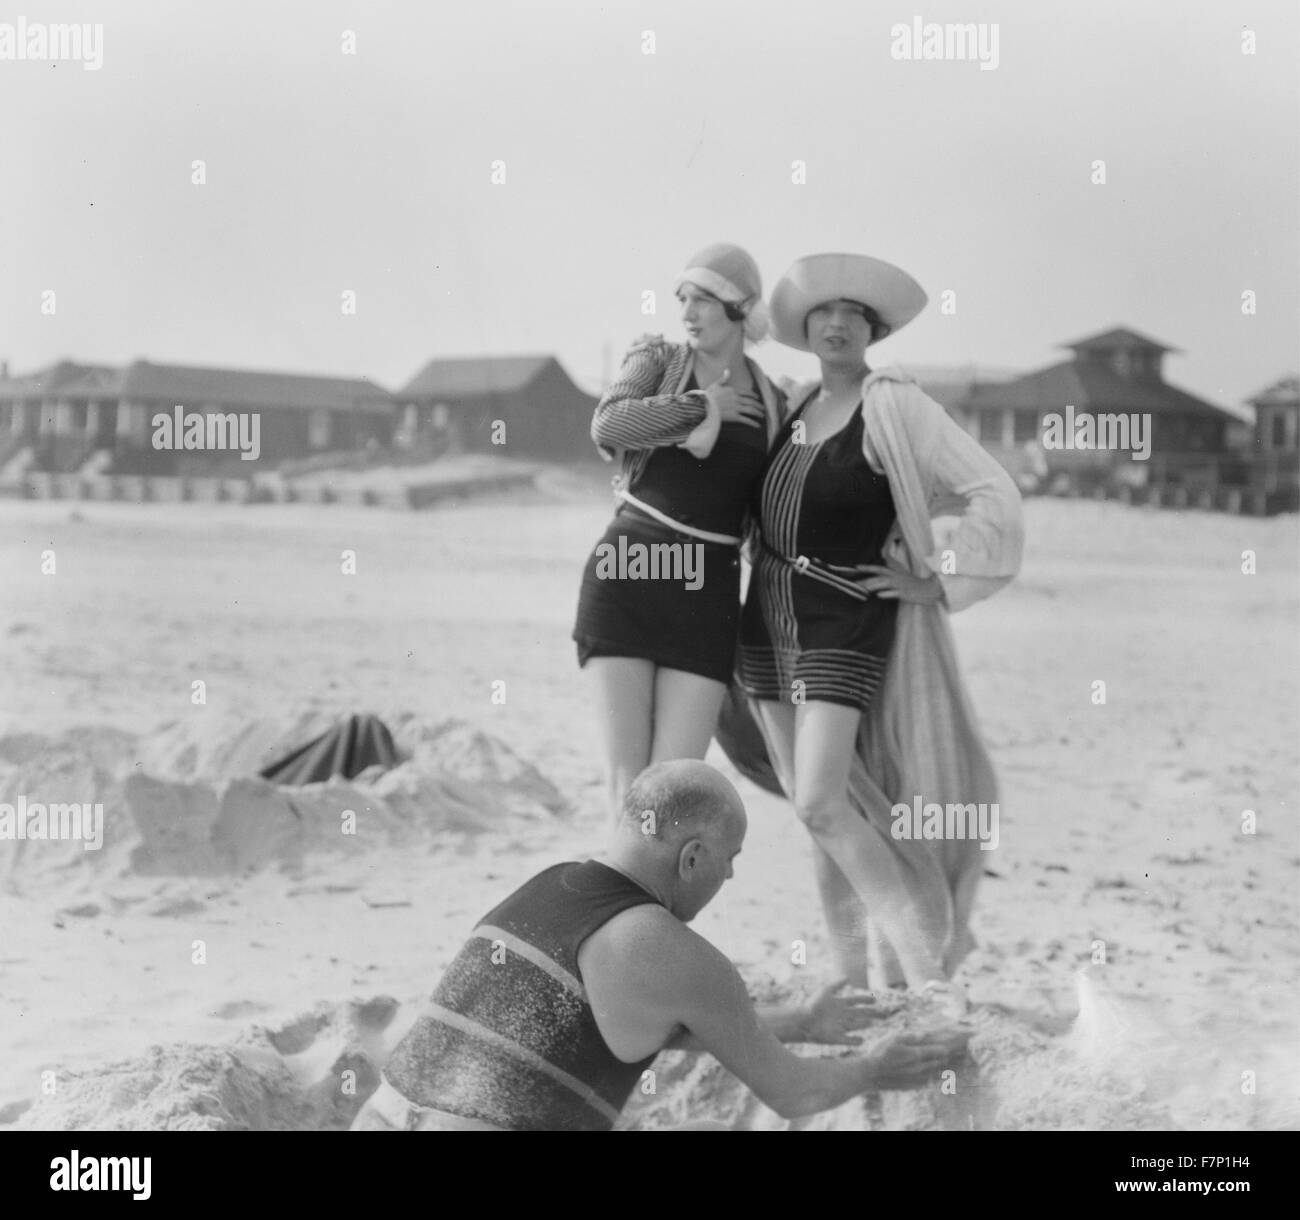 Unidentified man building sand castle and two women, Long Beach, New York 1910 by Arnold Genthe 1869-1942, photographer - Stock Image